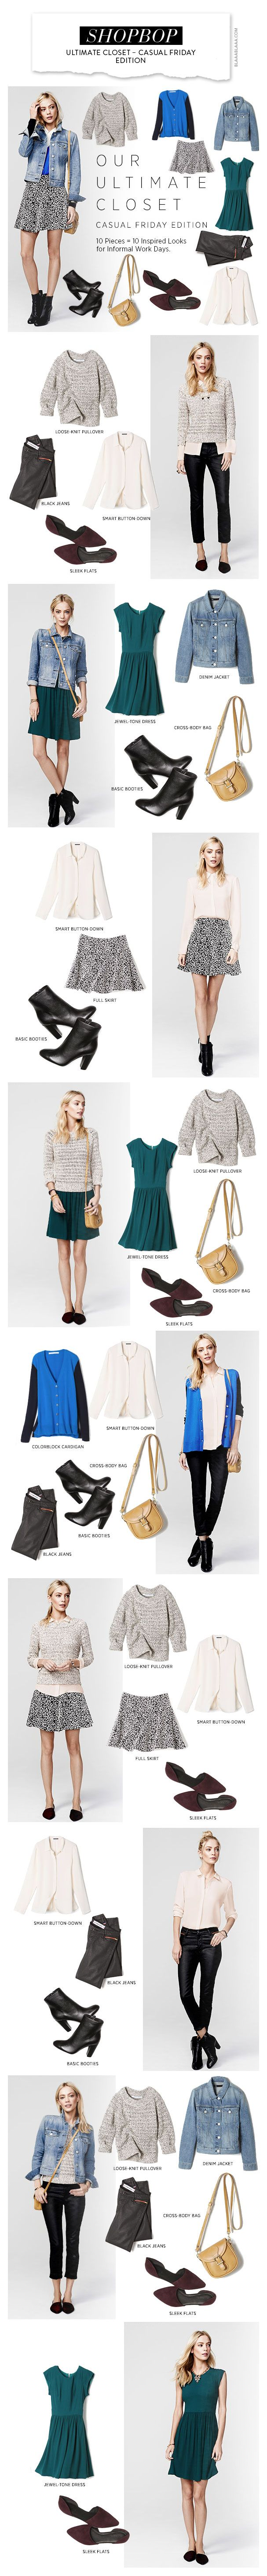 Shopbop: Ultimate Closet – Casual Friday Edition